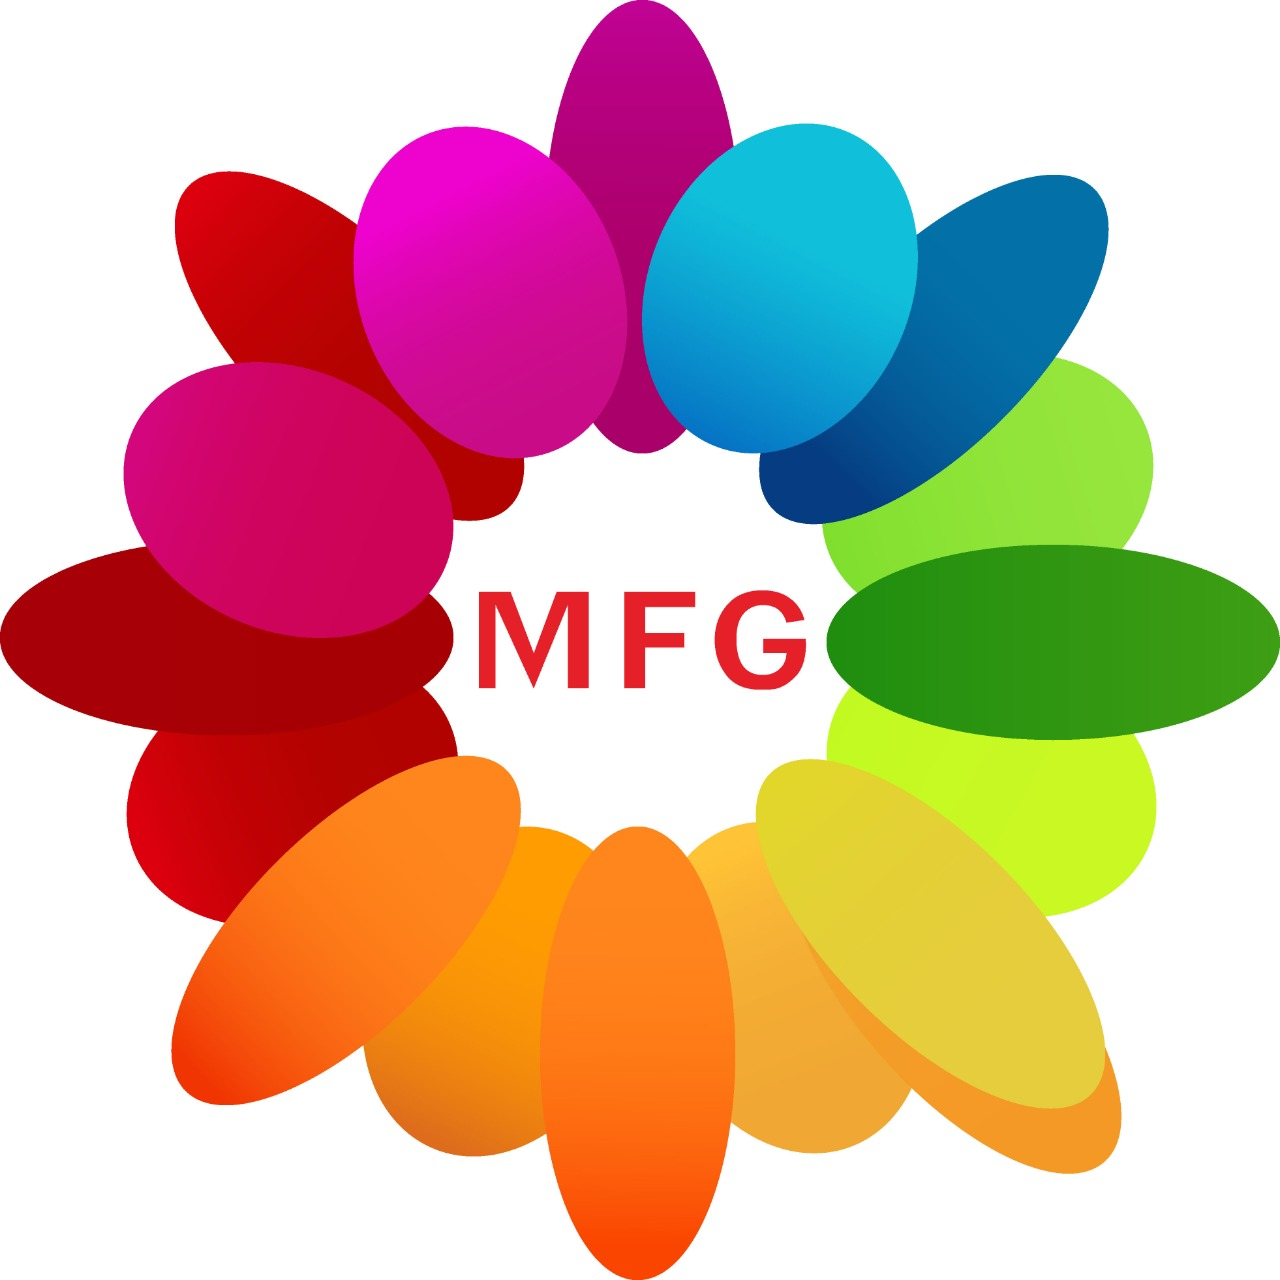 Bunch of lilies with red carnation with 1 kg heart shape chocolate truffle cake with 3 heart shape balloons